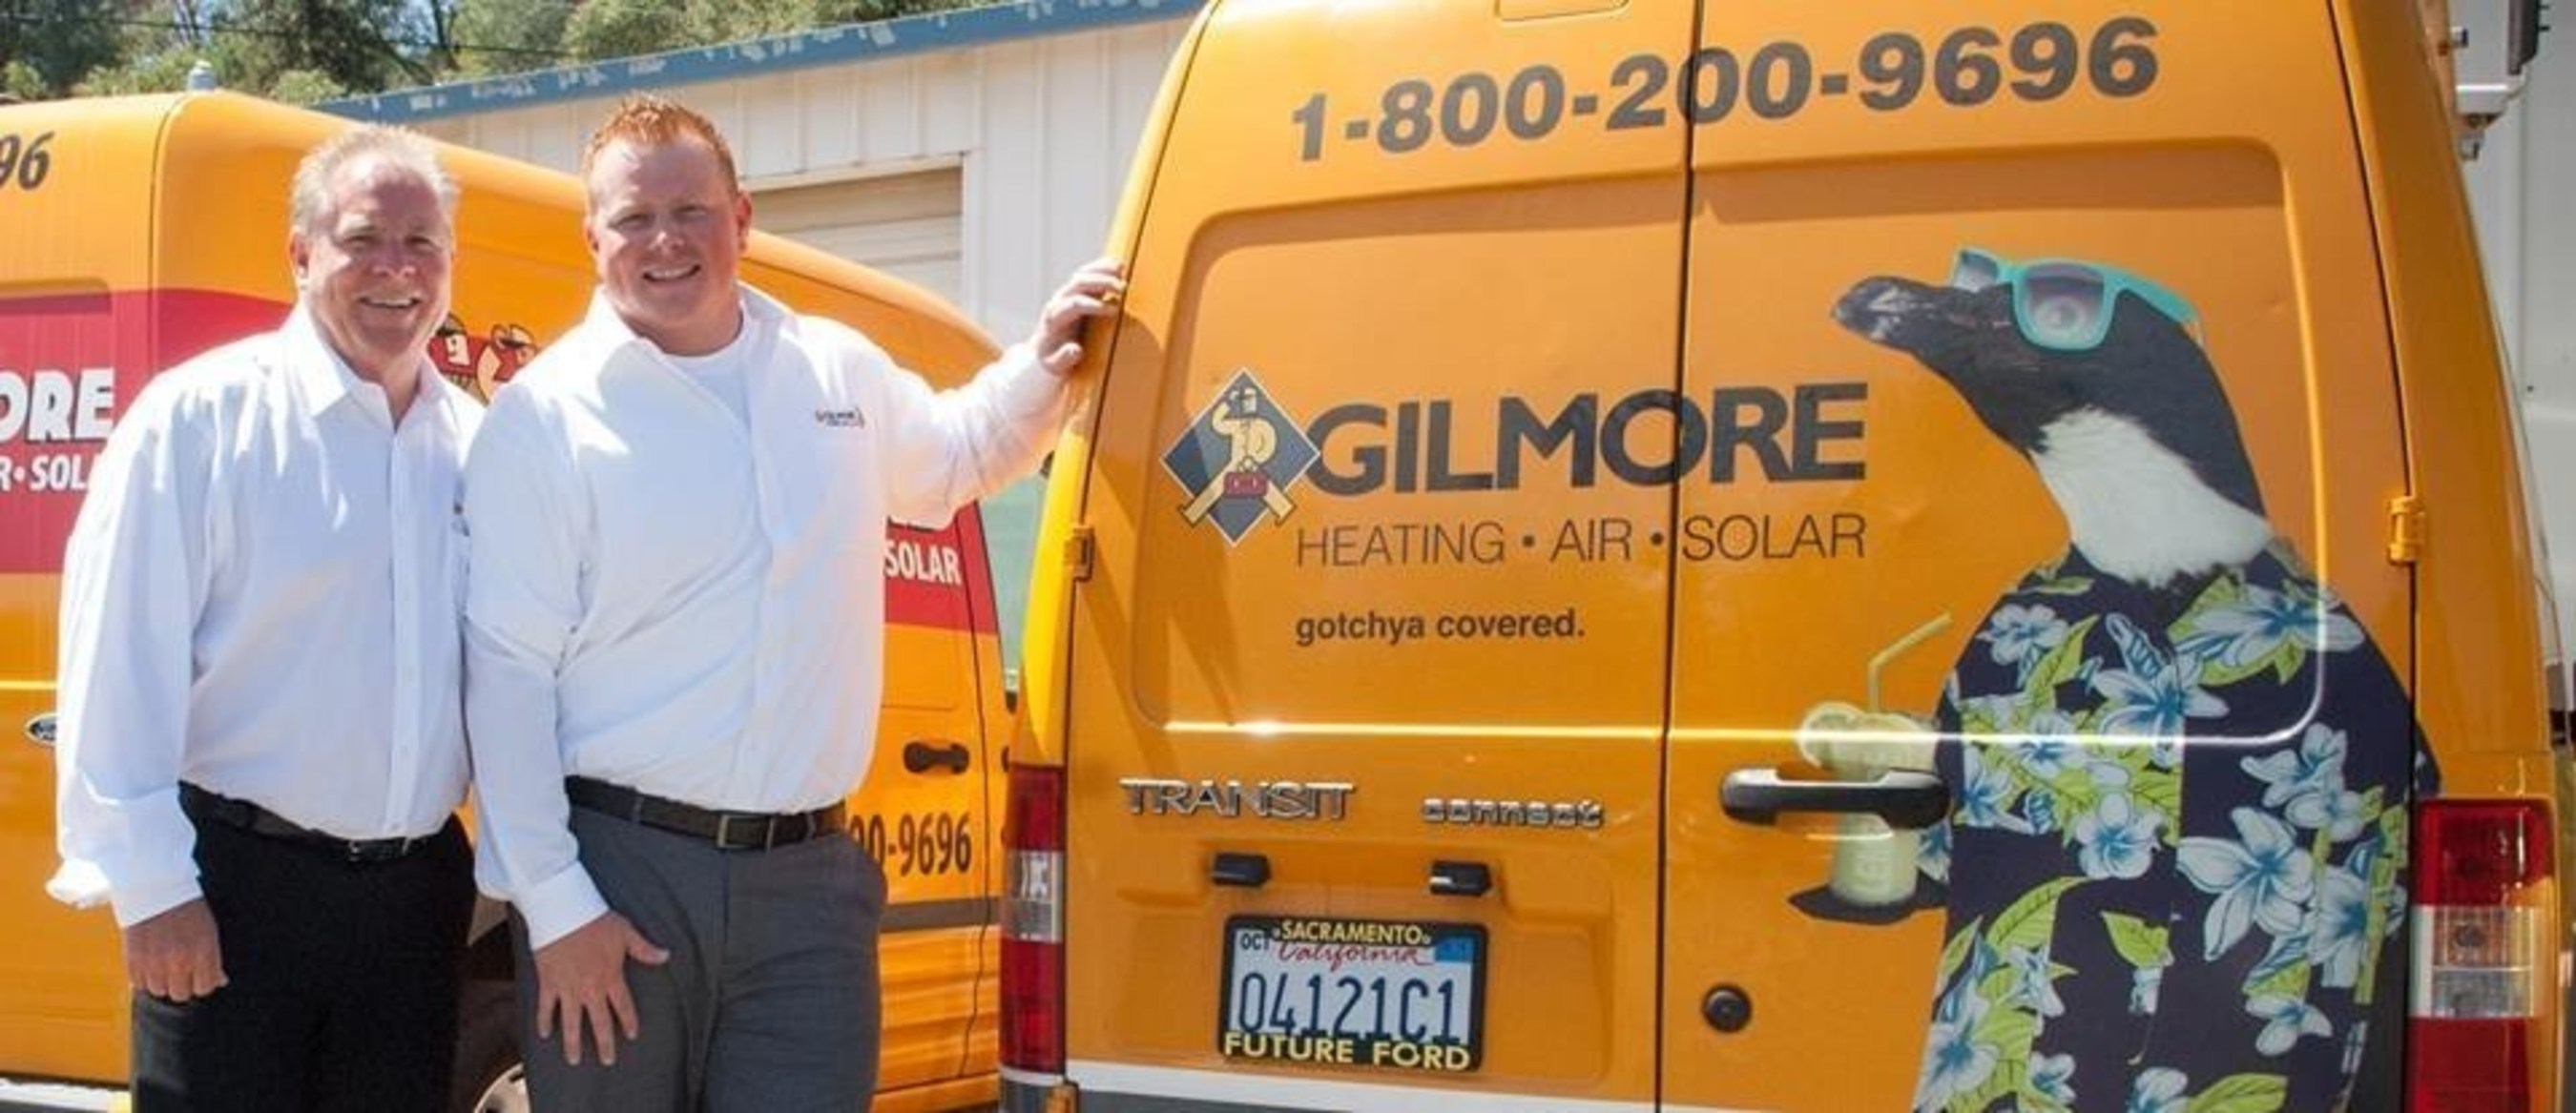 """Gilmore Heating, Air, Solar, a family-owned and operated company, serves the Sacramento area. John Gilmore (l), and son, Darrin, GM, are dedicated to """"Get More with Gilmore"""" motto."""